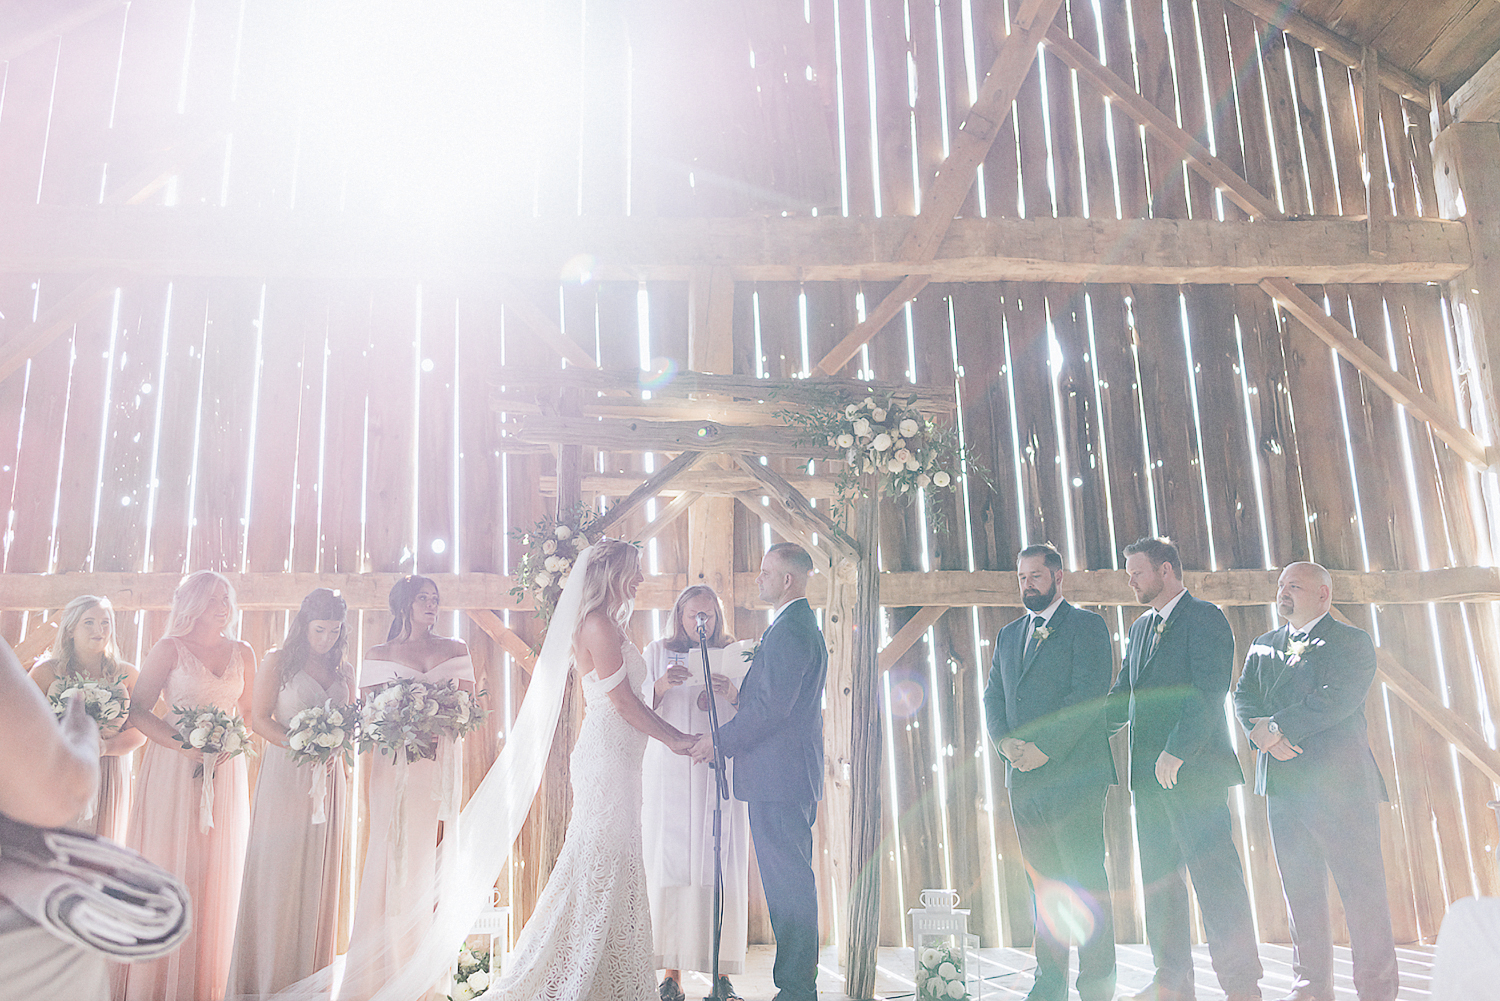 dowswell-barn-wedding-beaverton-best-wedding-photographers-toronto-moody-style-candid-photojounalistic-approach-intimate-vintage-farm-wedding-Farm-wedding-venue-details-ceremony-details.jpg